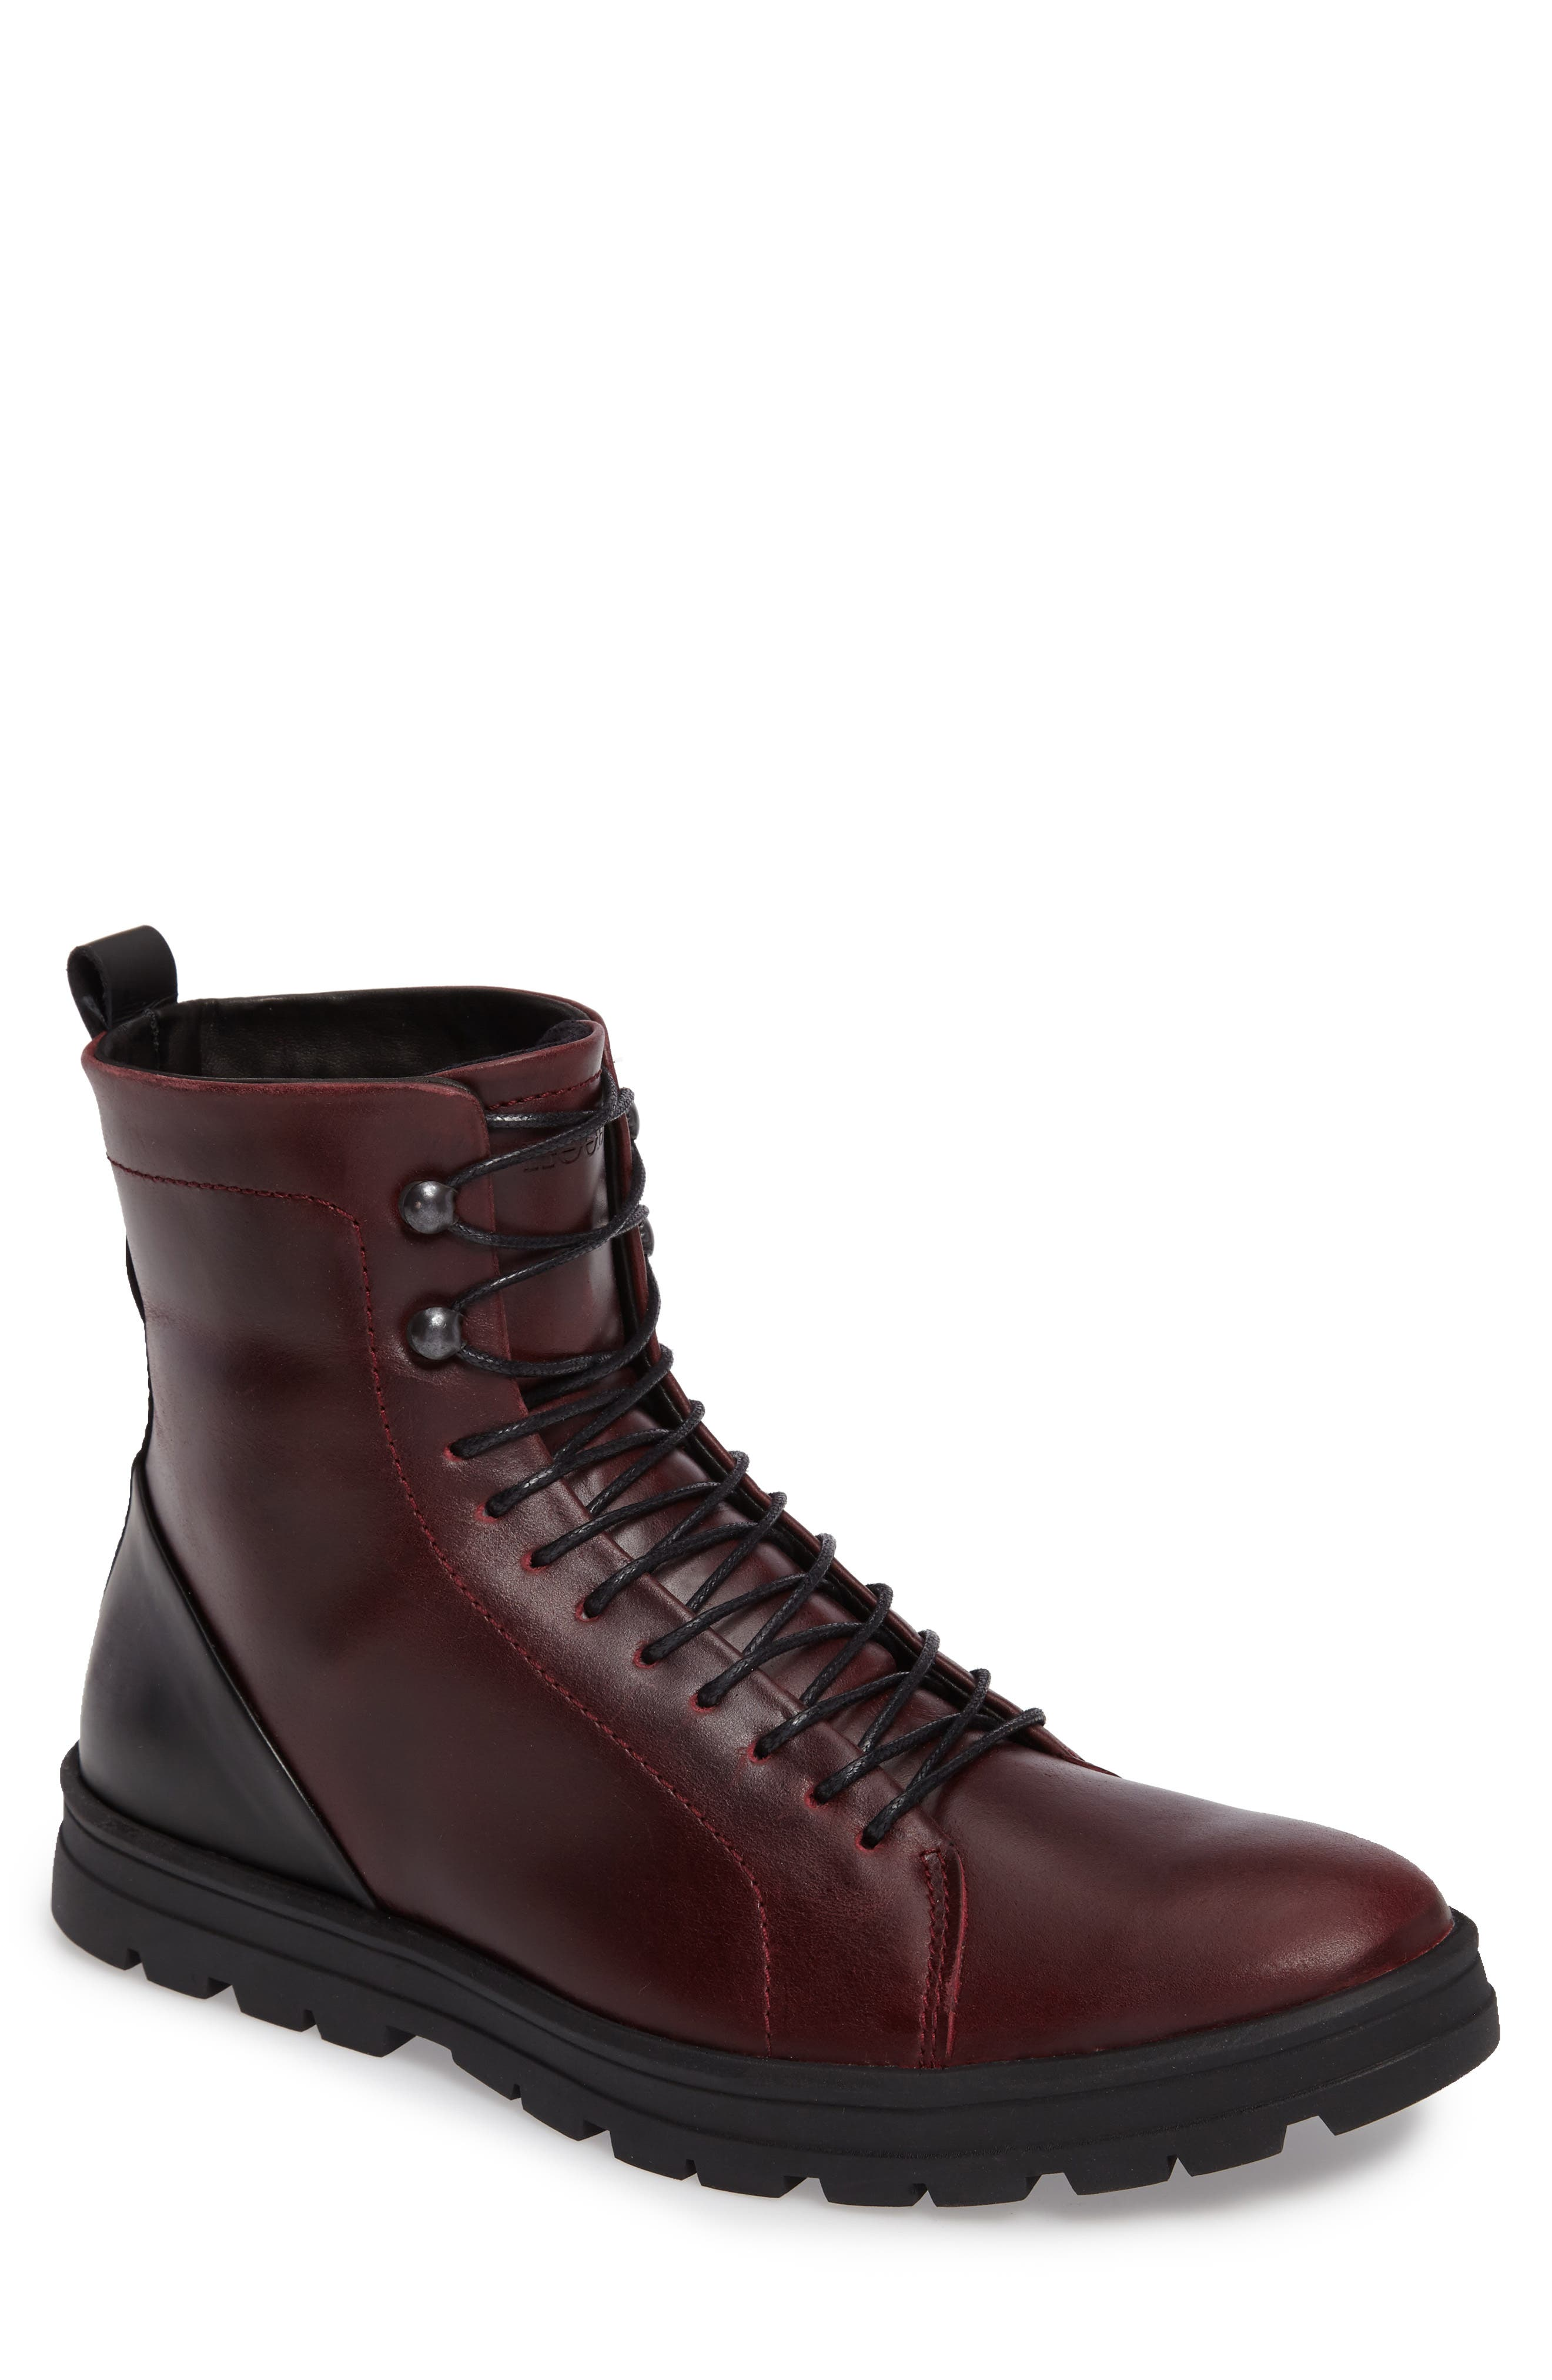 Hudson Waterproof Tall Boot,                         Main,                         color, Bordeaux Leather